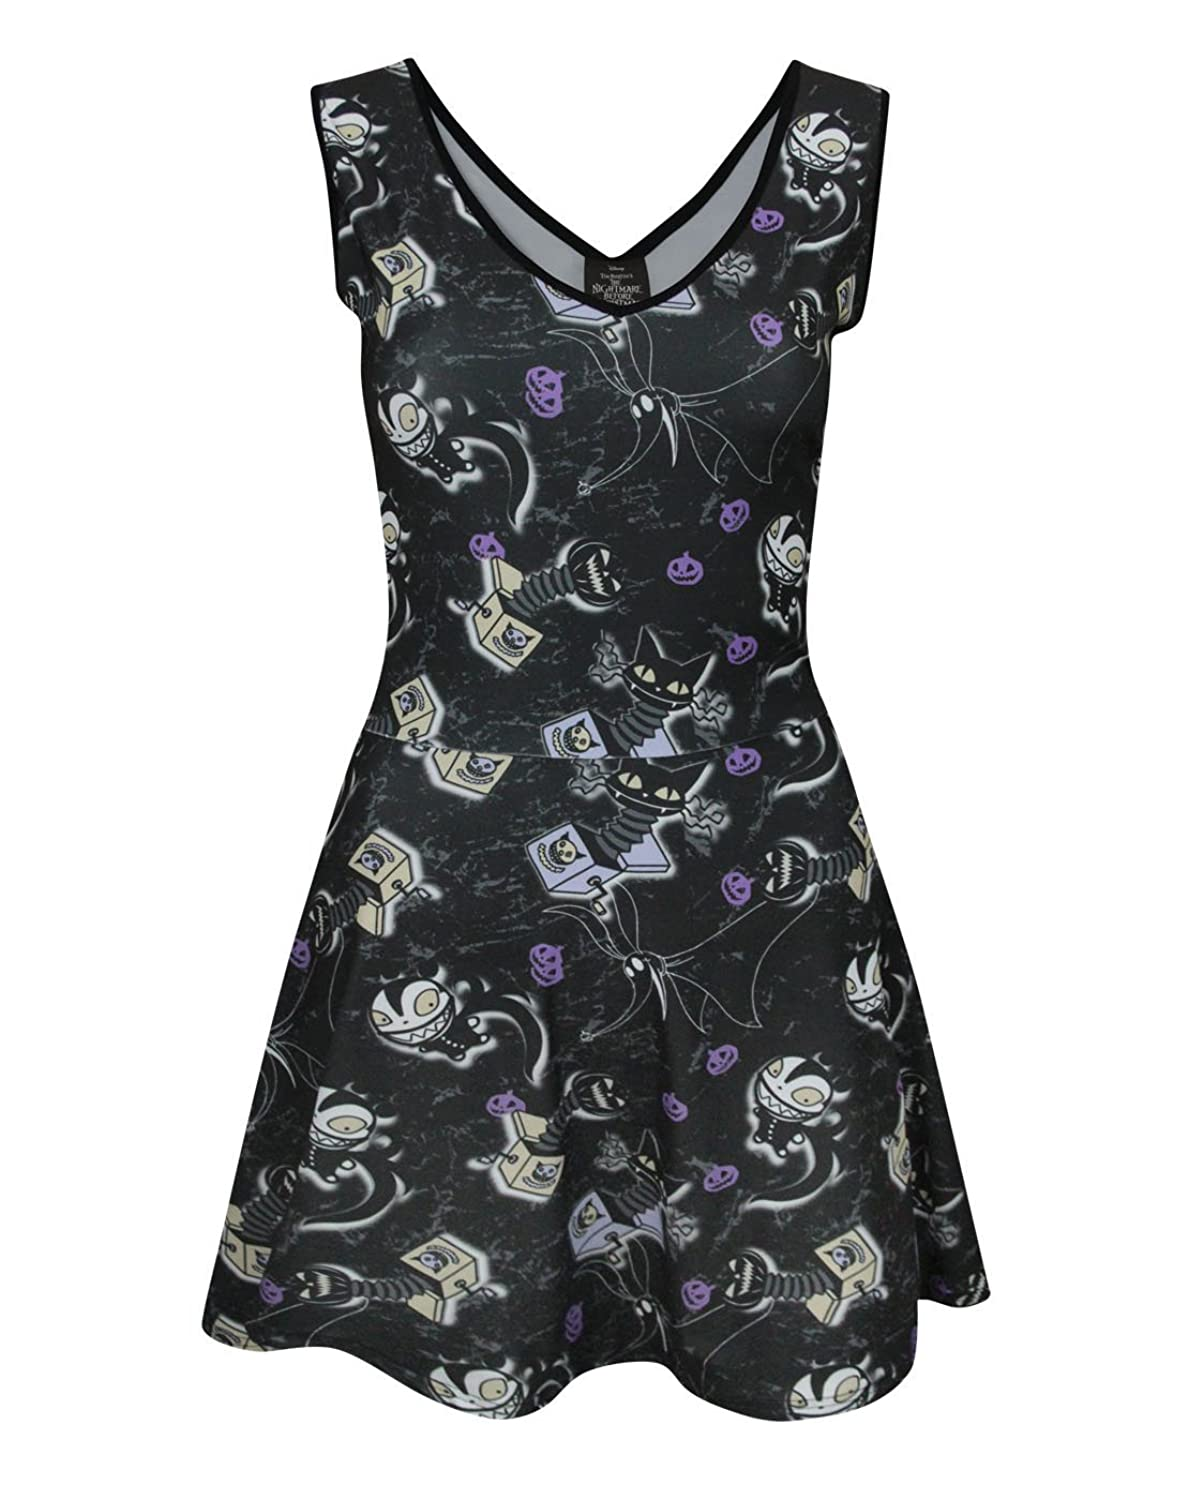 Amazon.com: Official Nightmare Before Christmas Vampire Teddy Dress ...